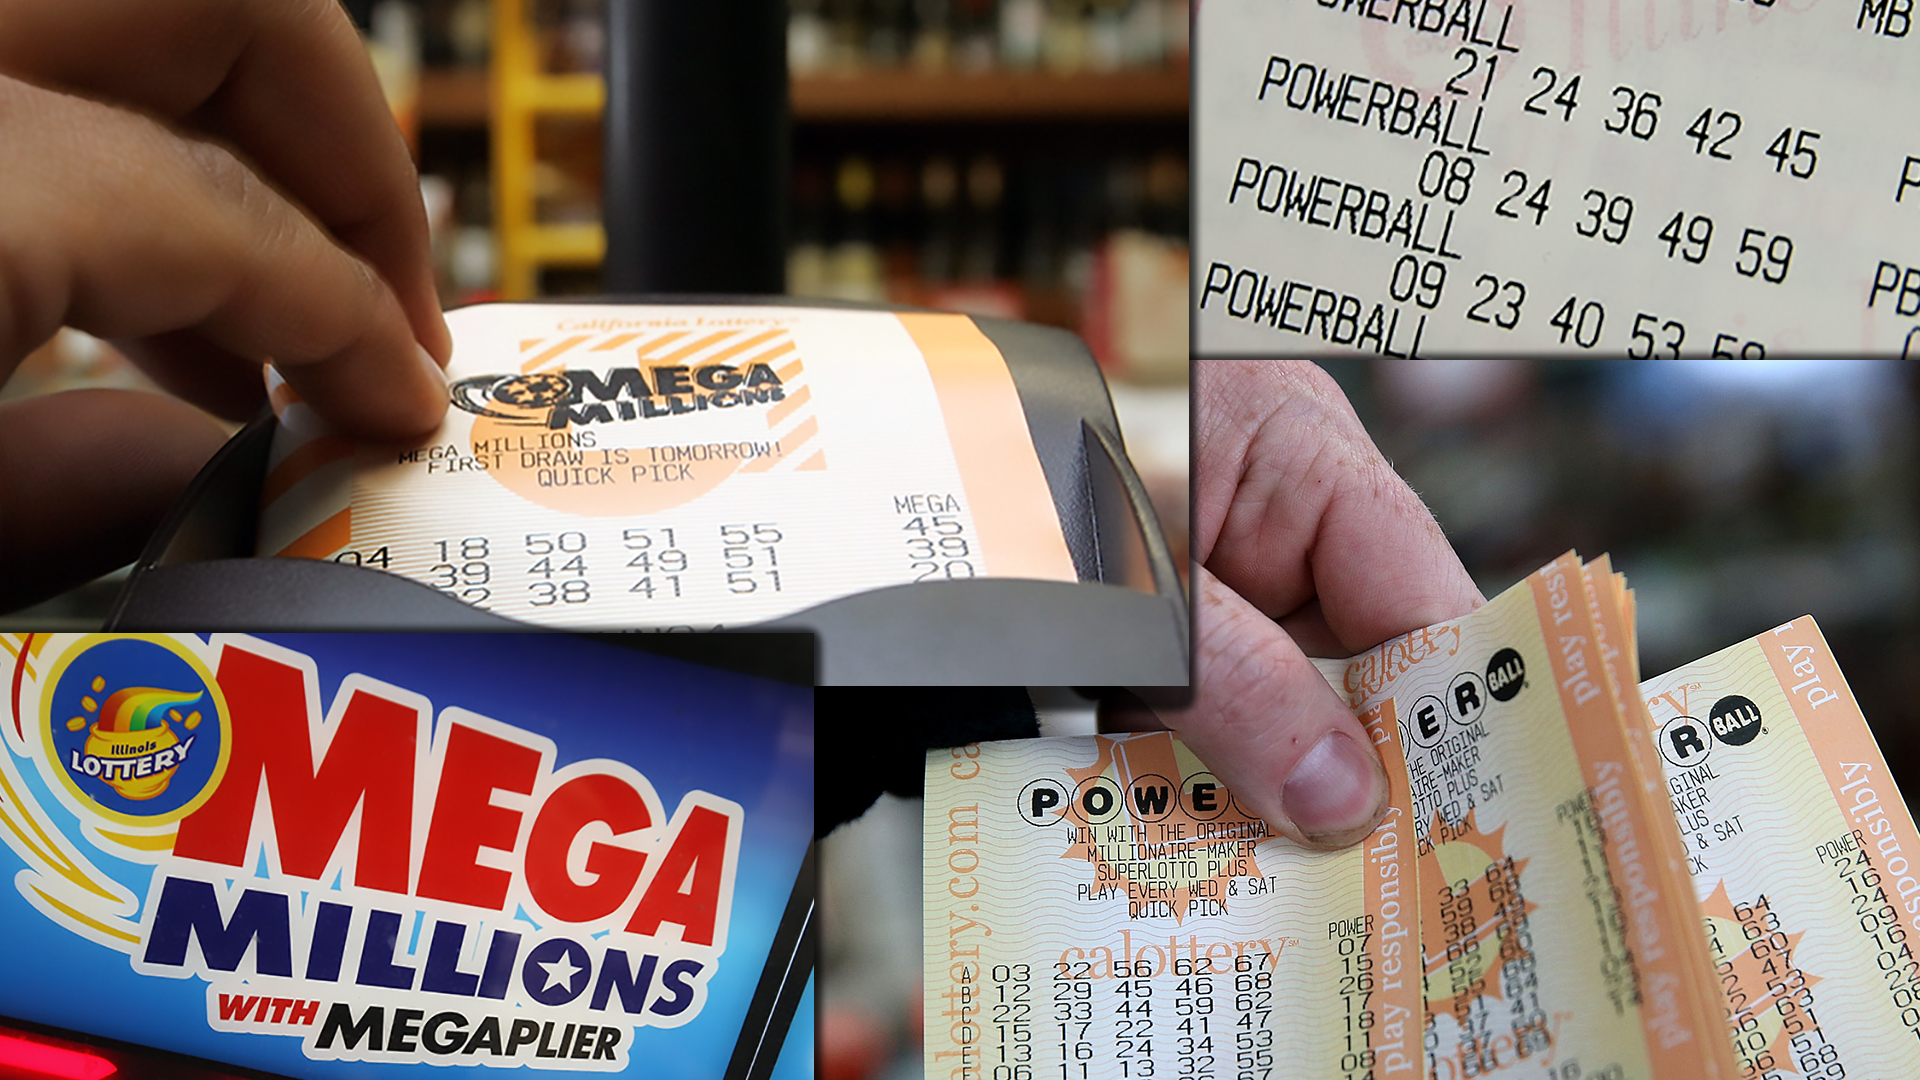 Powerball and Mega Millions Lottery combined-159532.jpg02187566